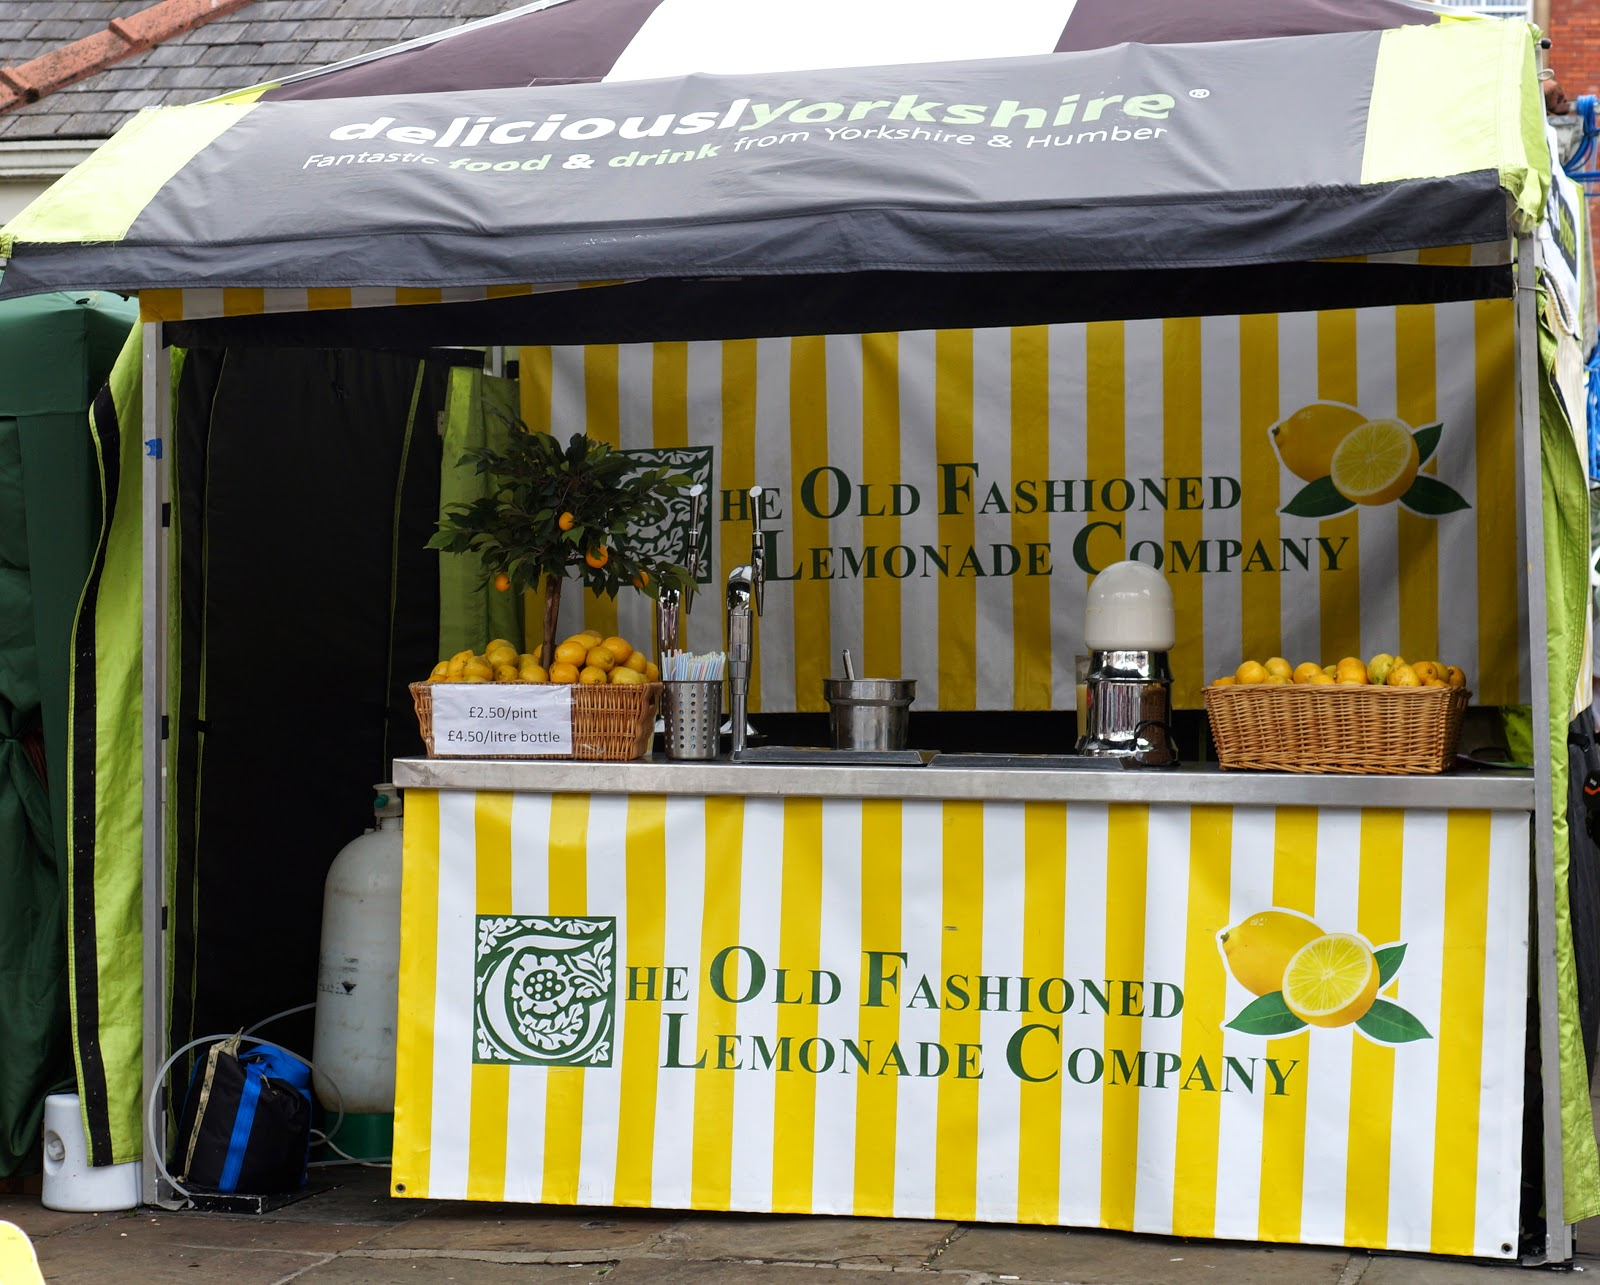 the old fashioned lemonade company